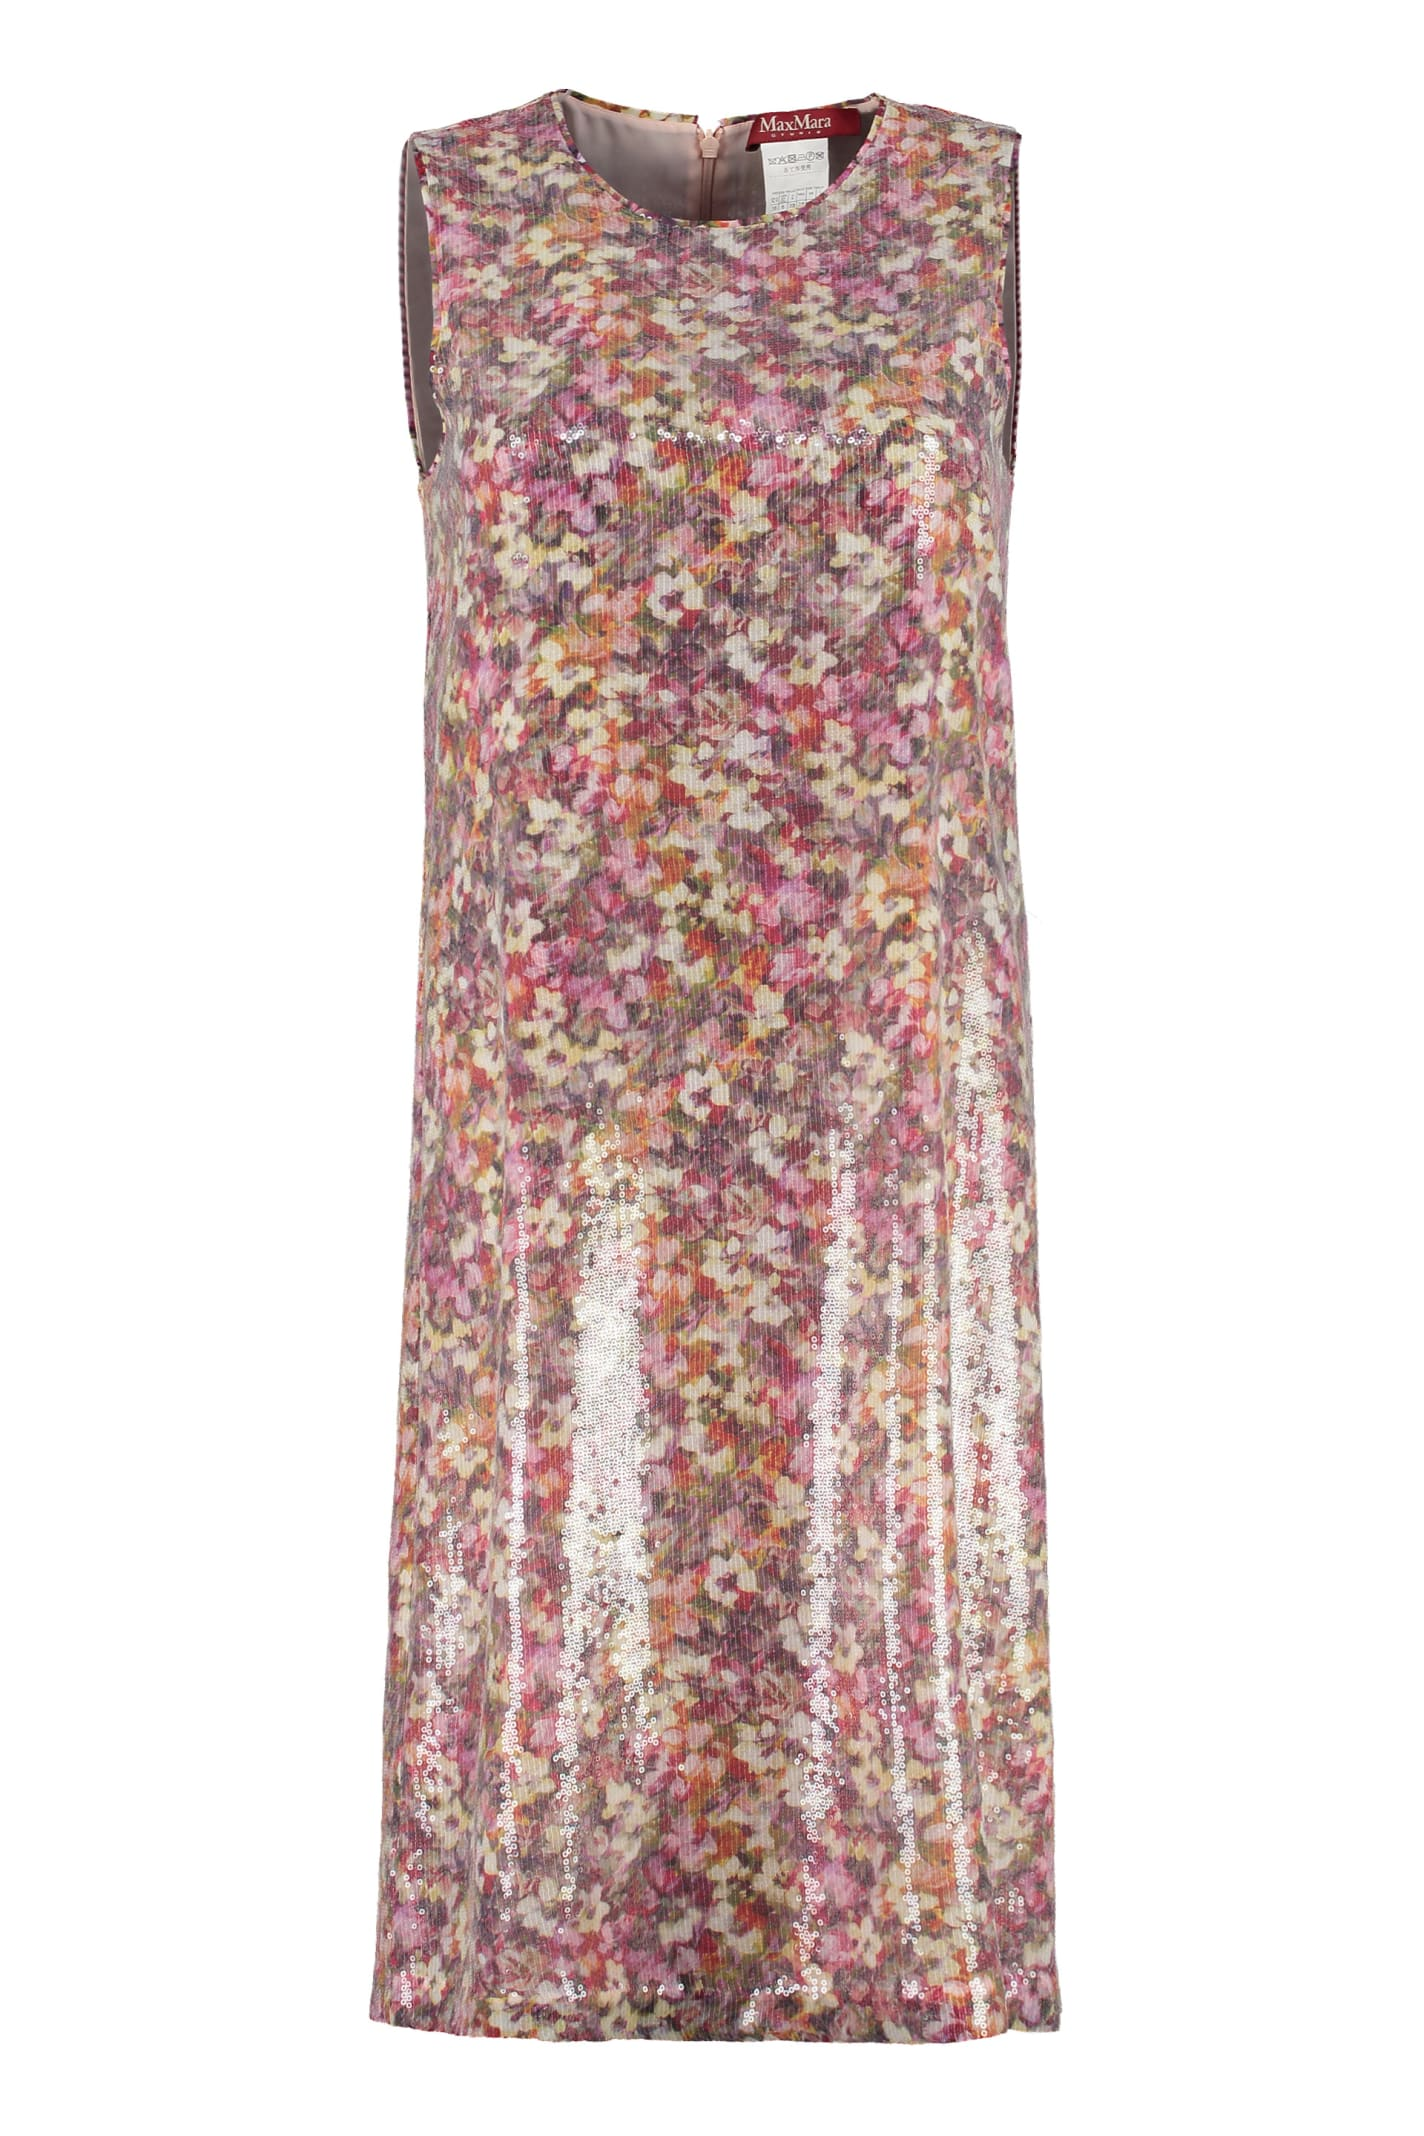 Max Mara Studio Blocco Sequined Dress